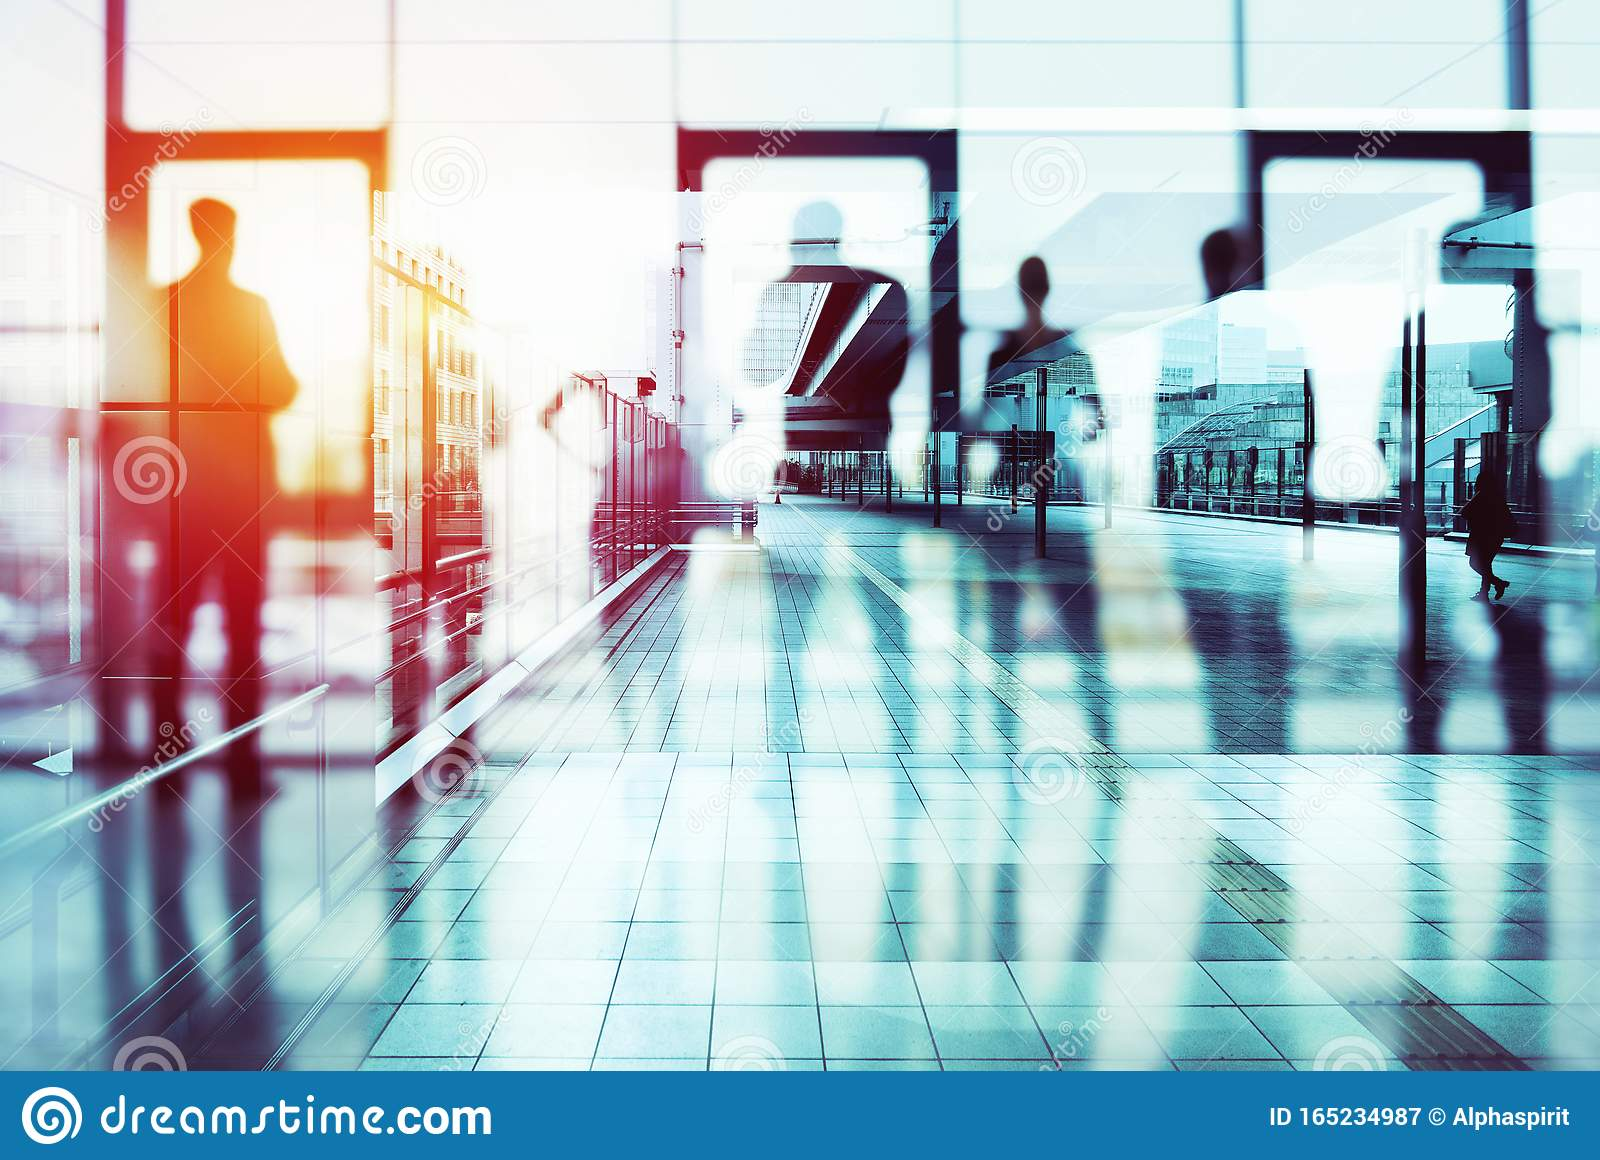 Background concept with business people silhouette looking out of the office. Double exposure effects